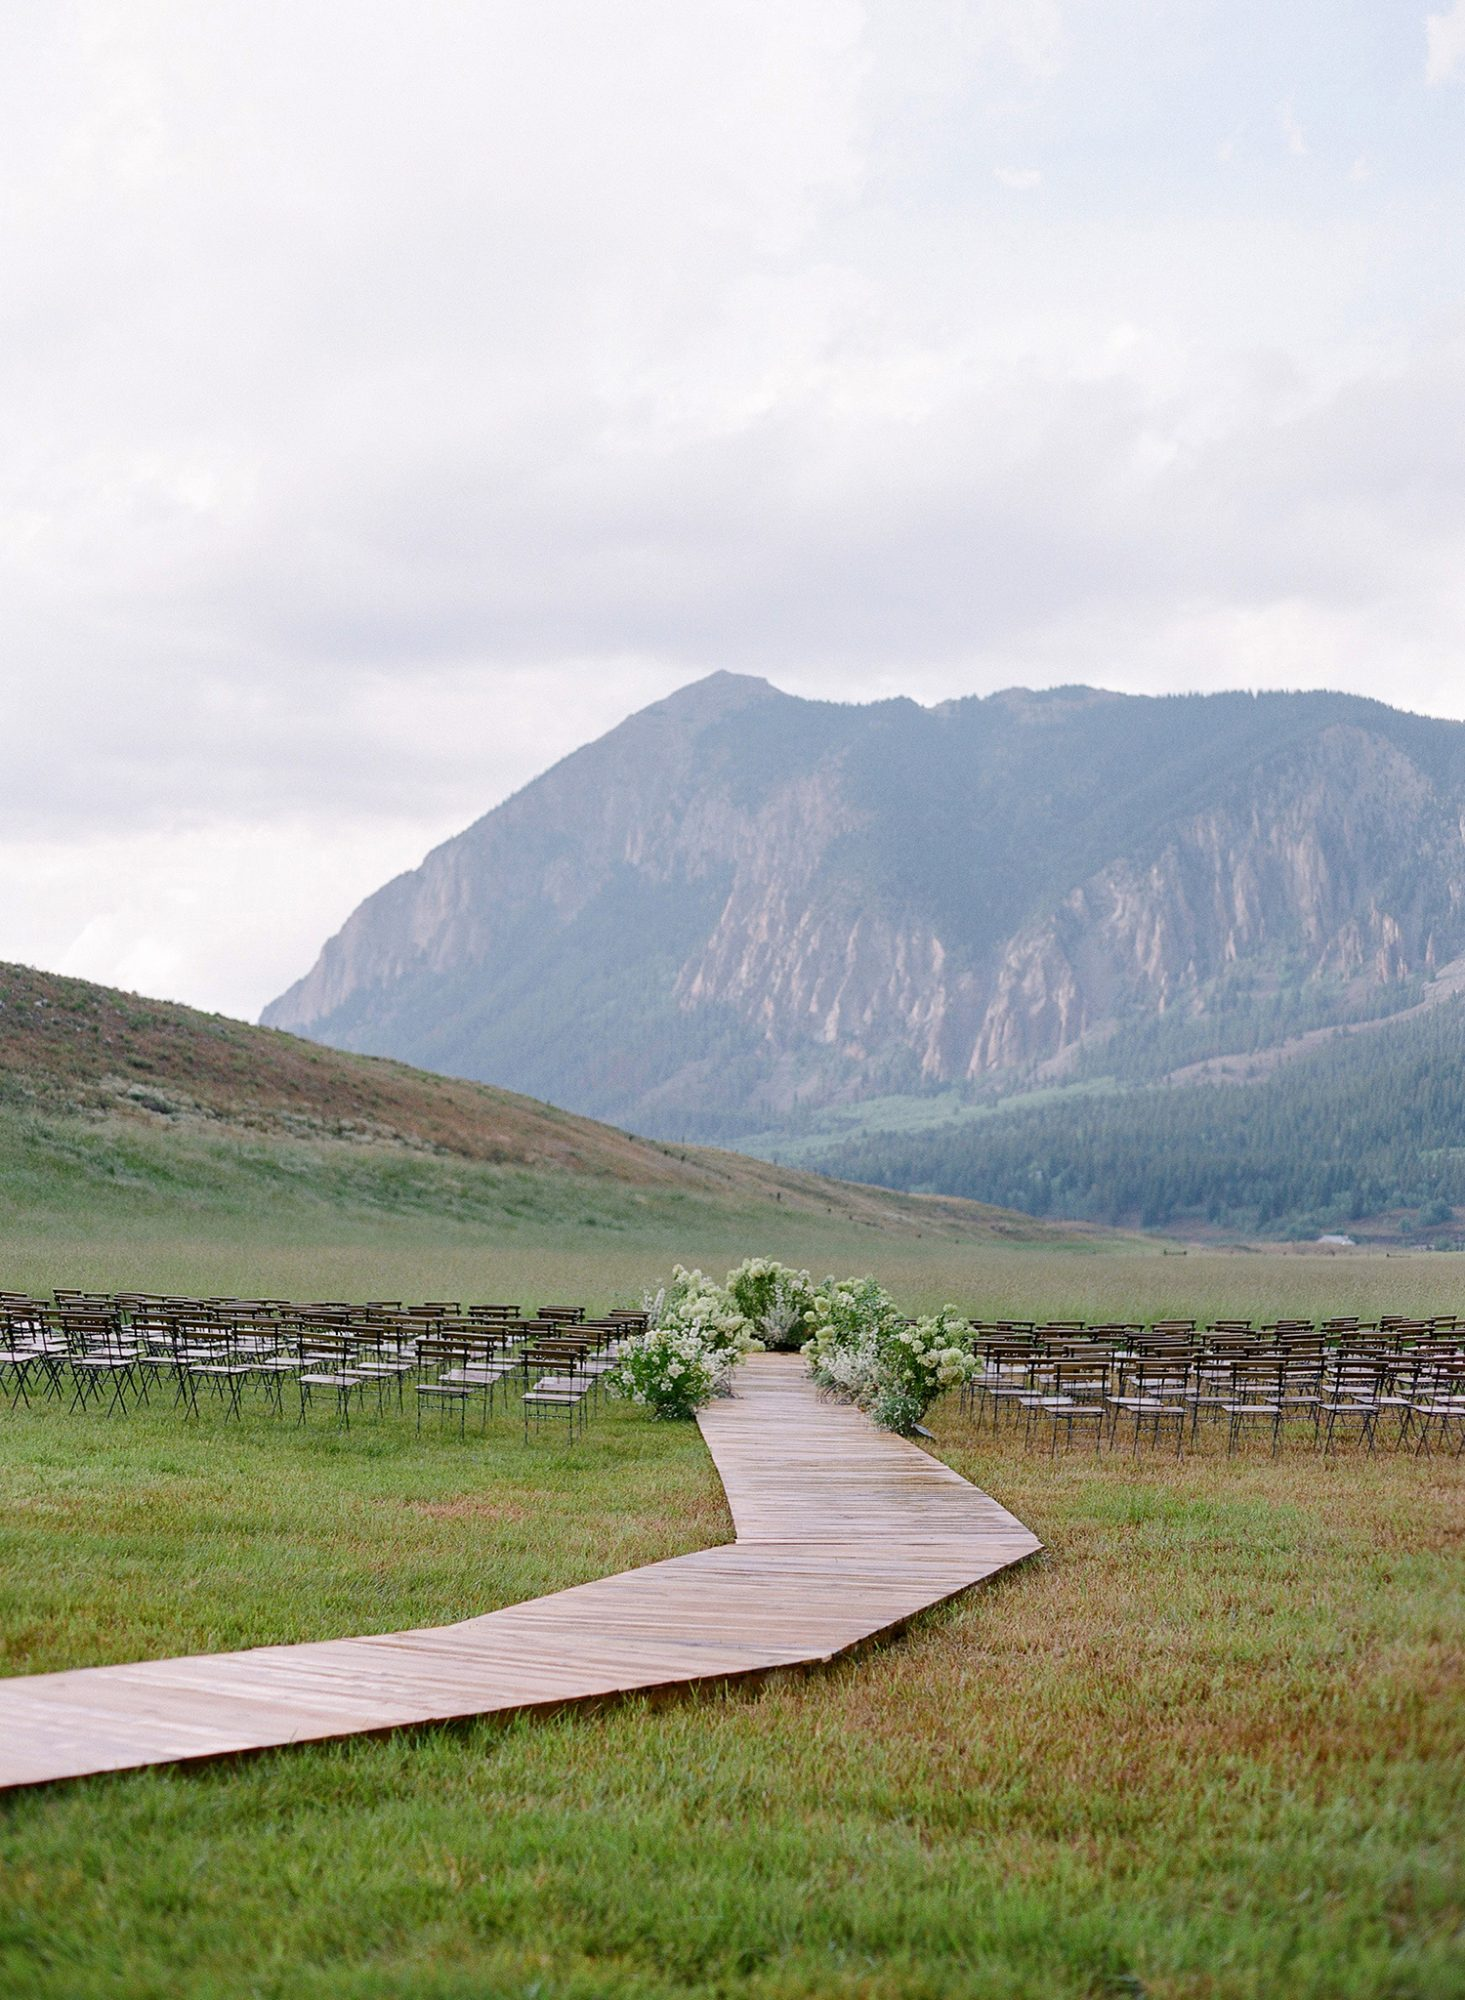 sloan scott wedding ceremony boardwalk chairs and mountains